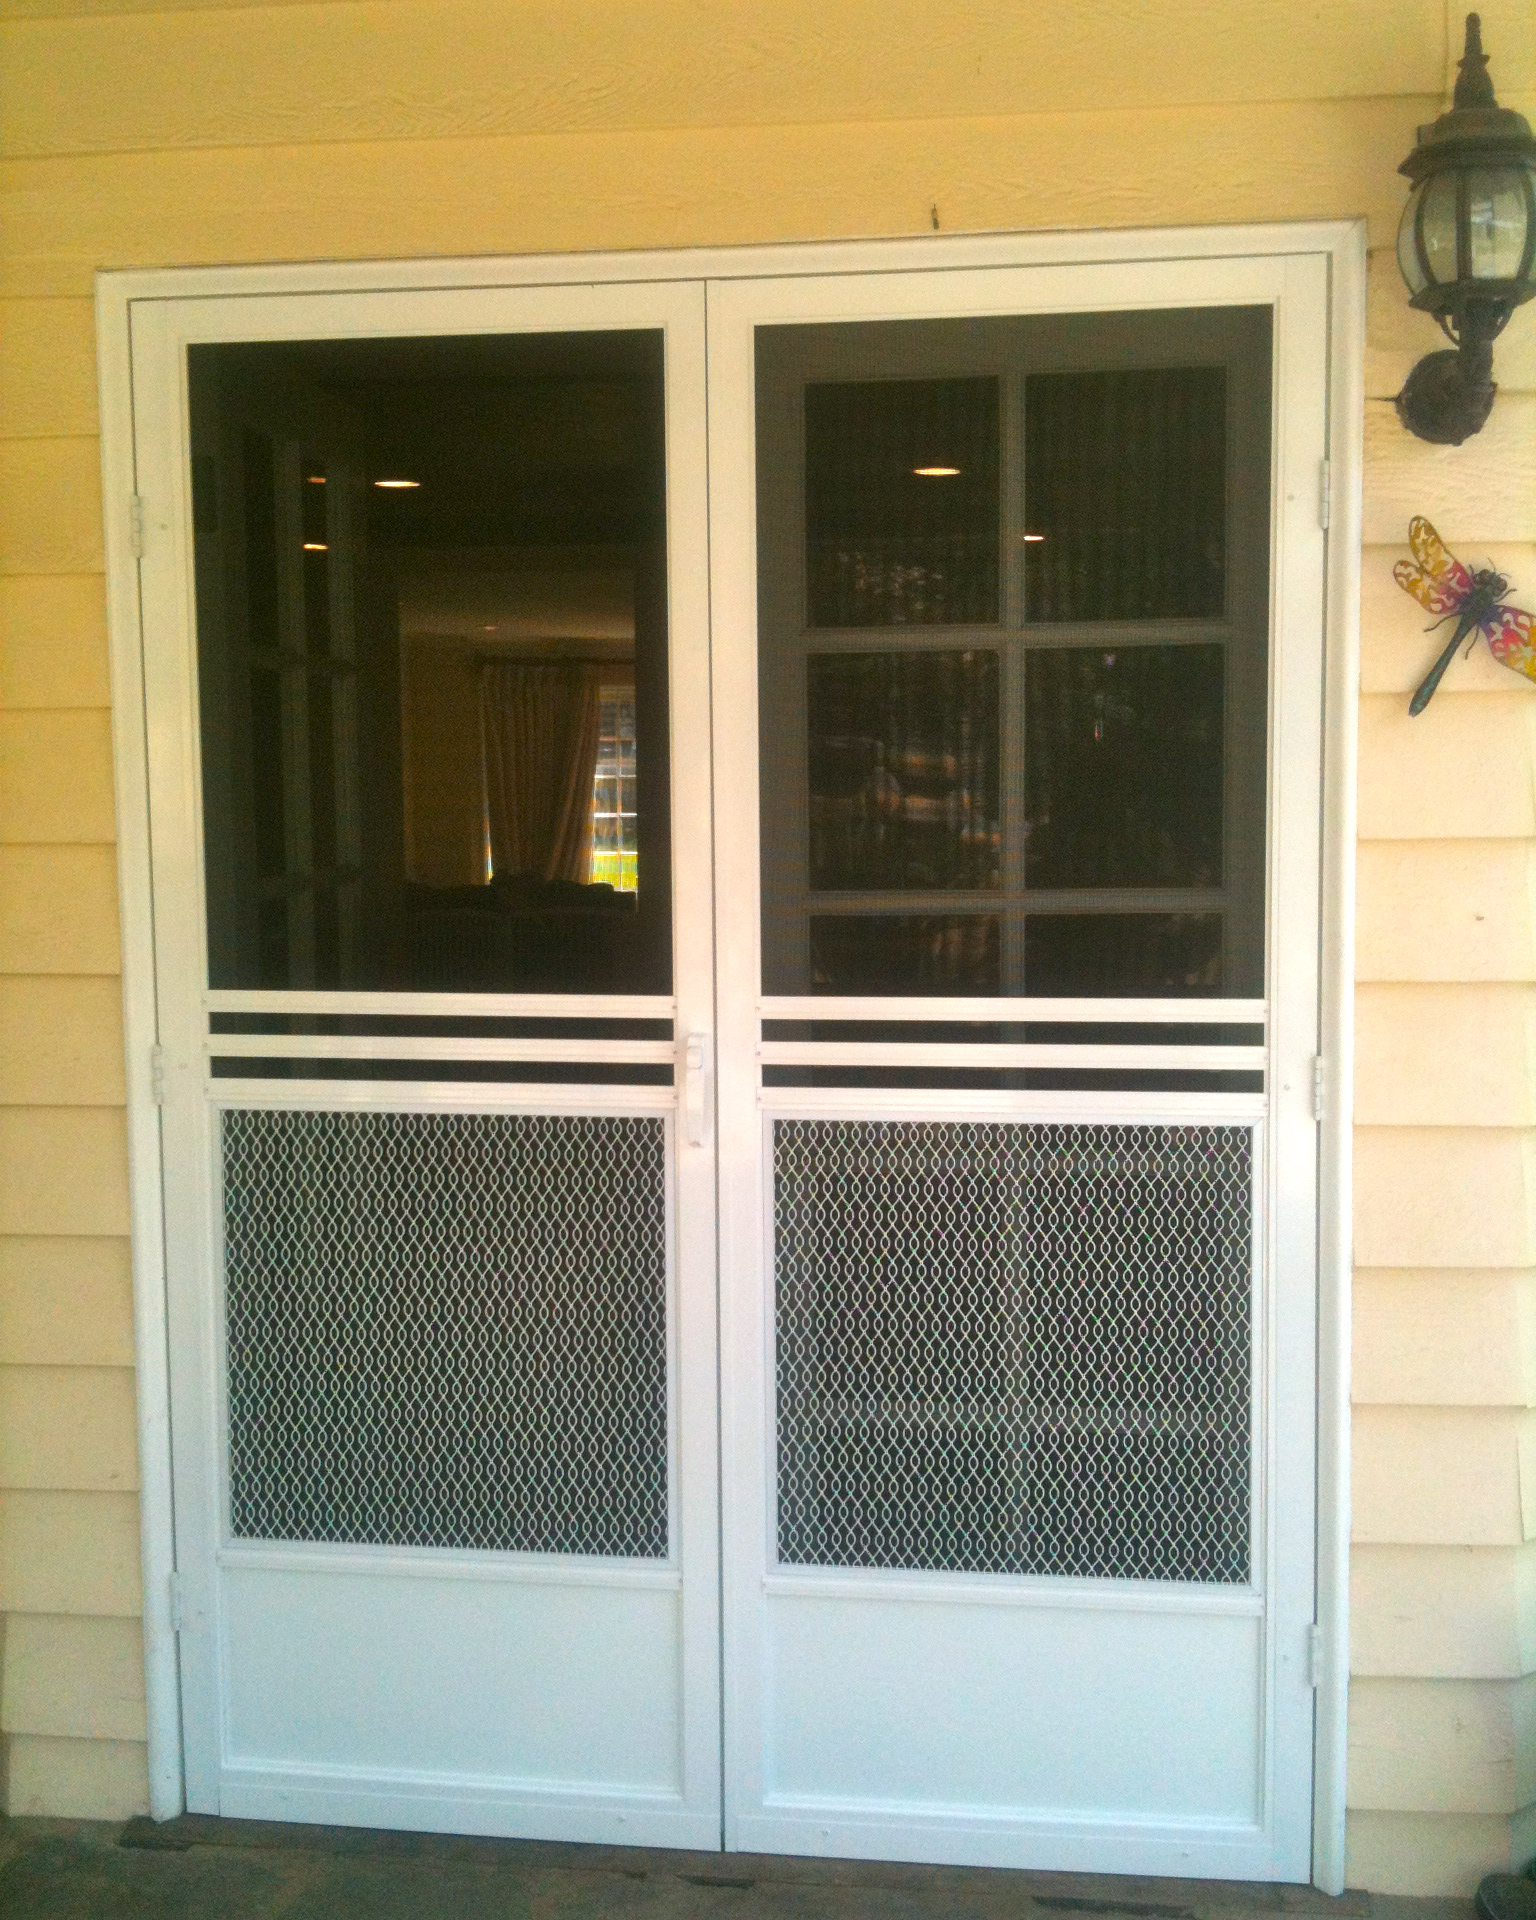 Screen doors window screen repair mobile screen service for 48 inch retractable screen door